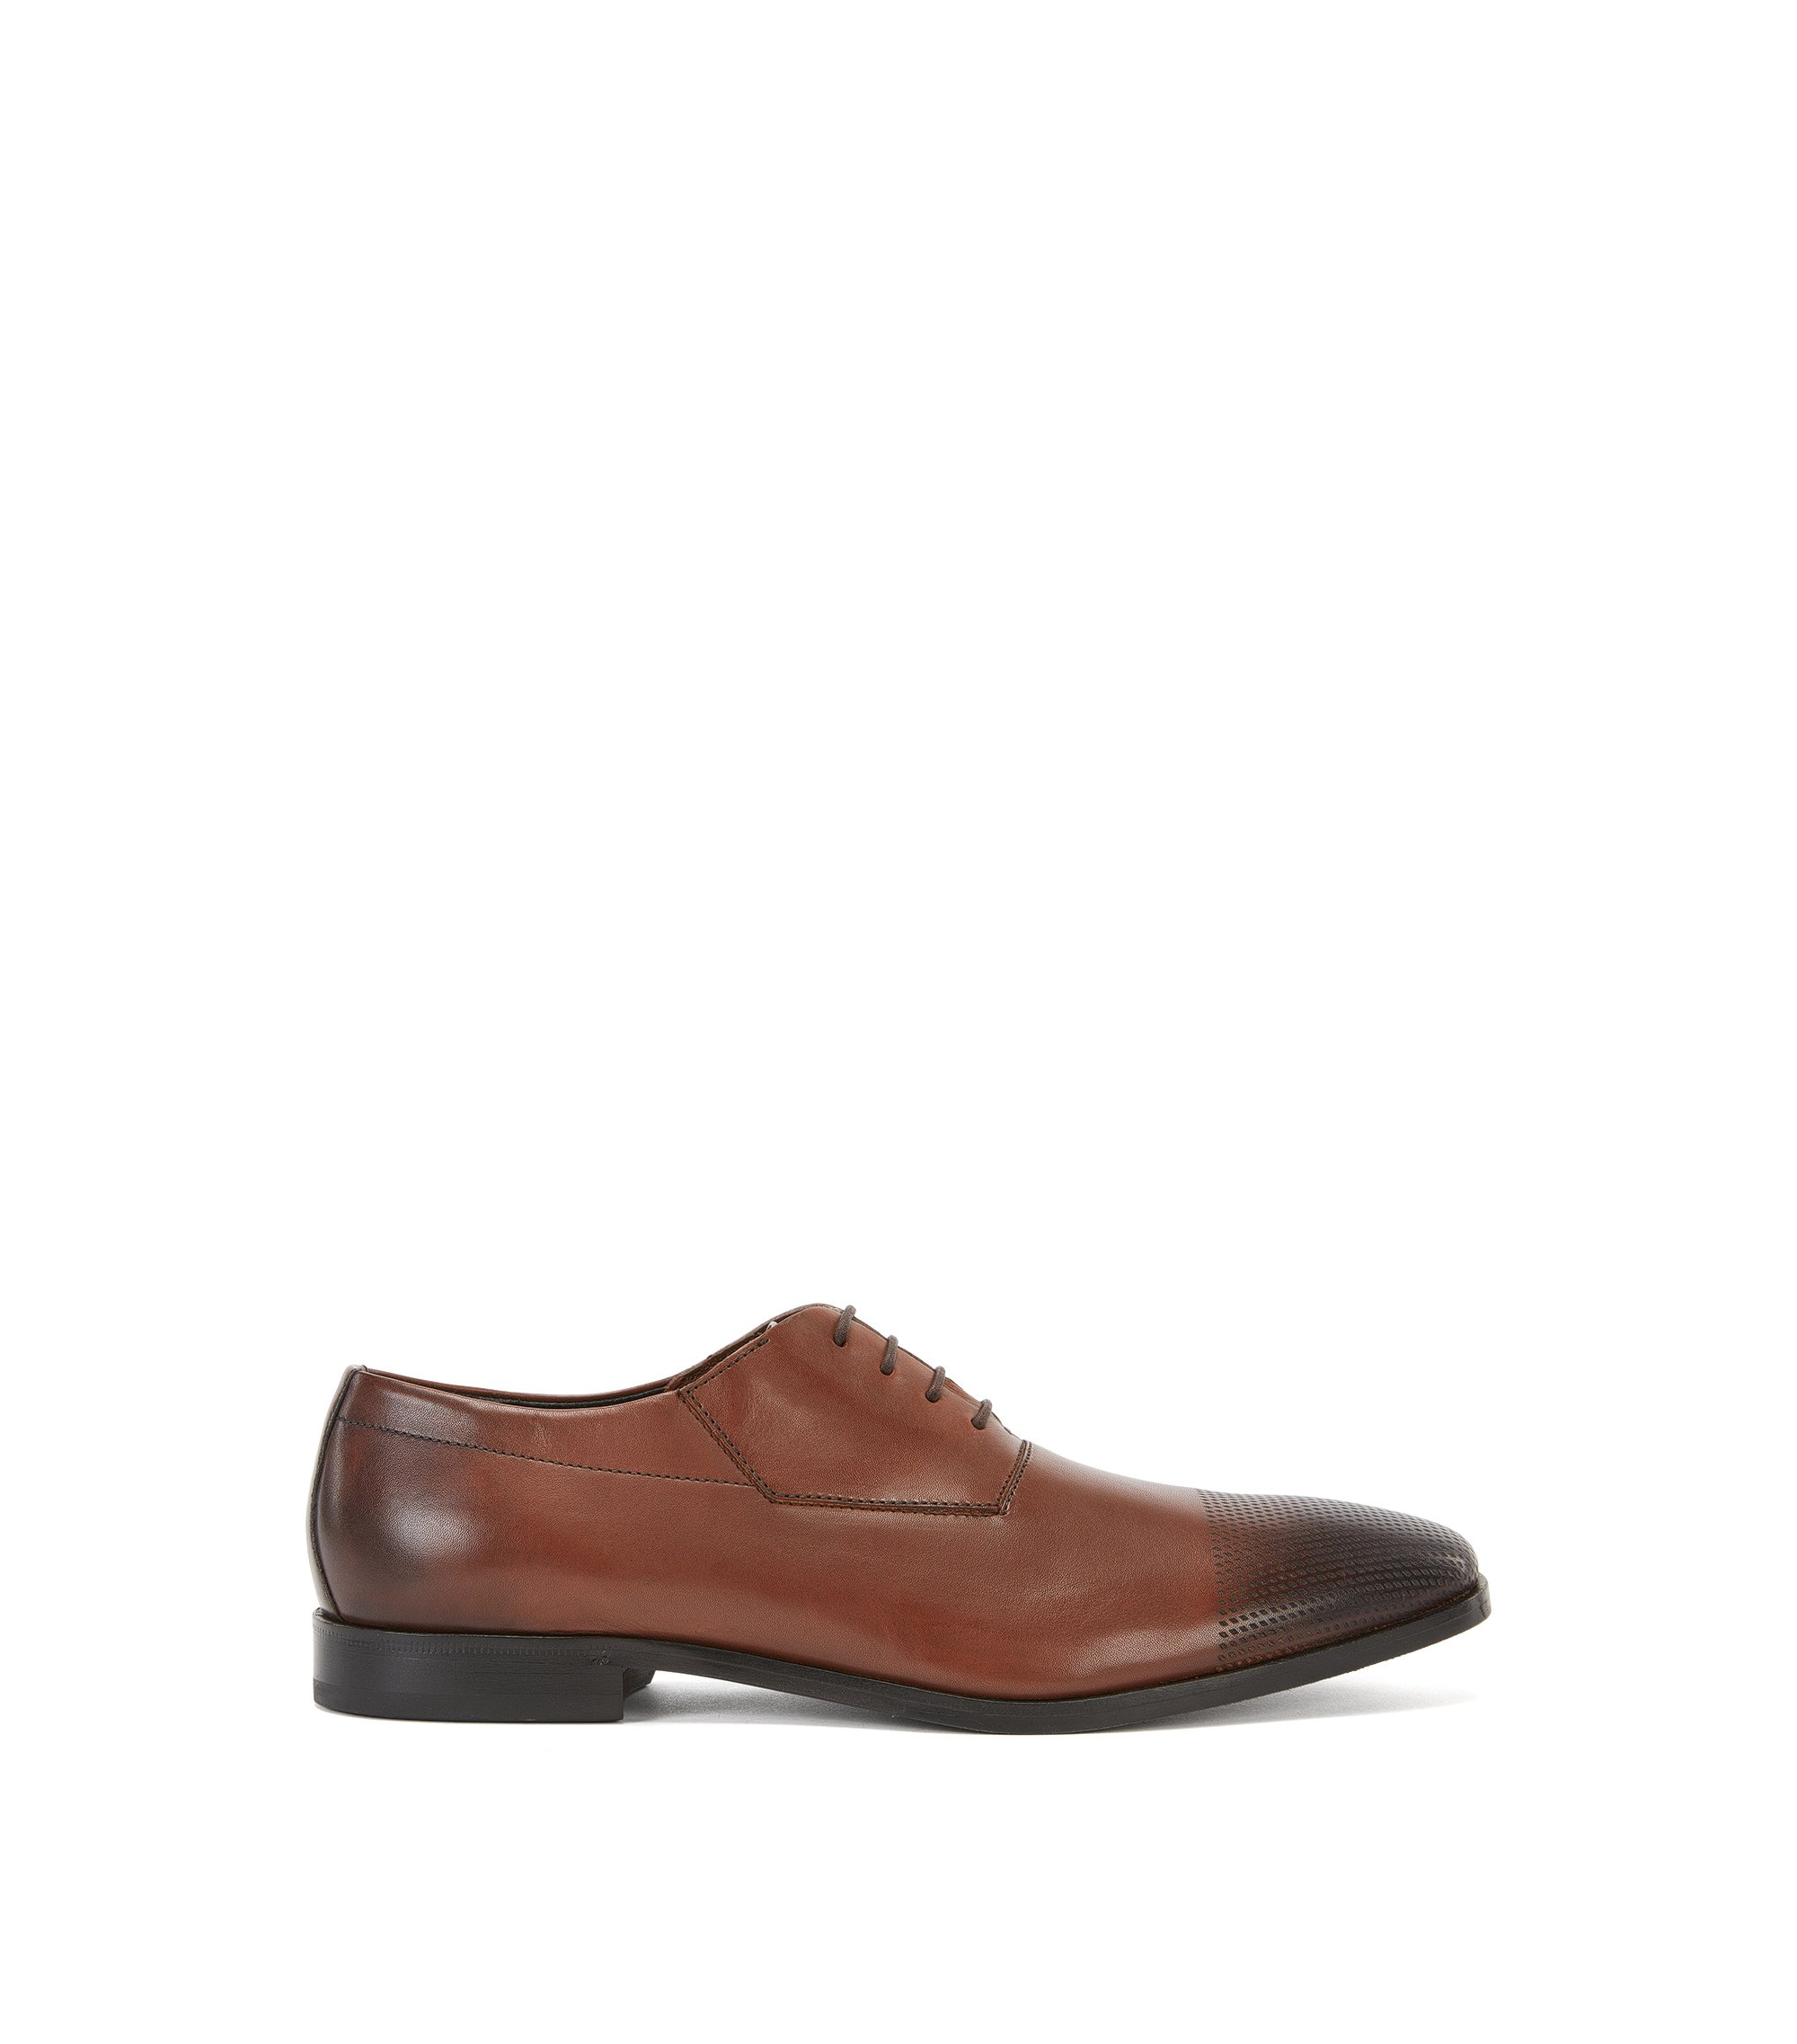 Perforated Leather Toe Oxford Dress Shoe | Square Oxfr Srls, Brown